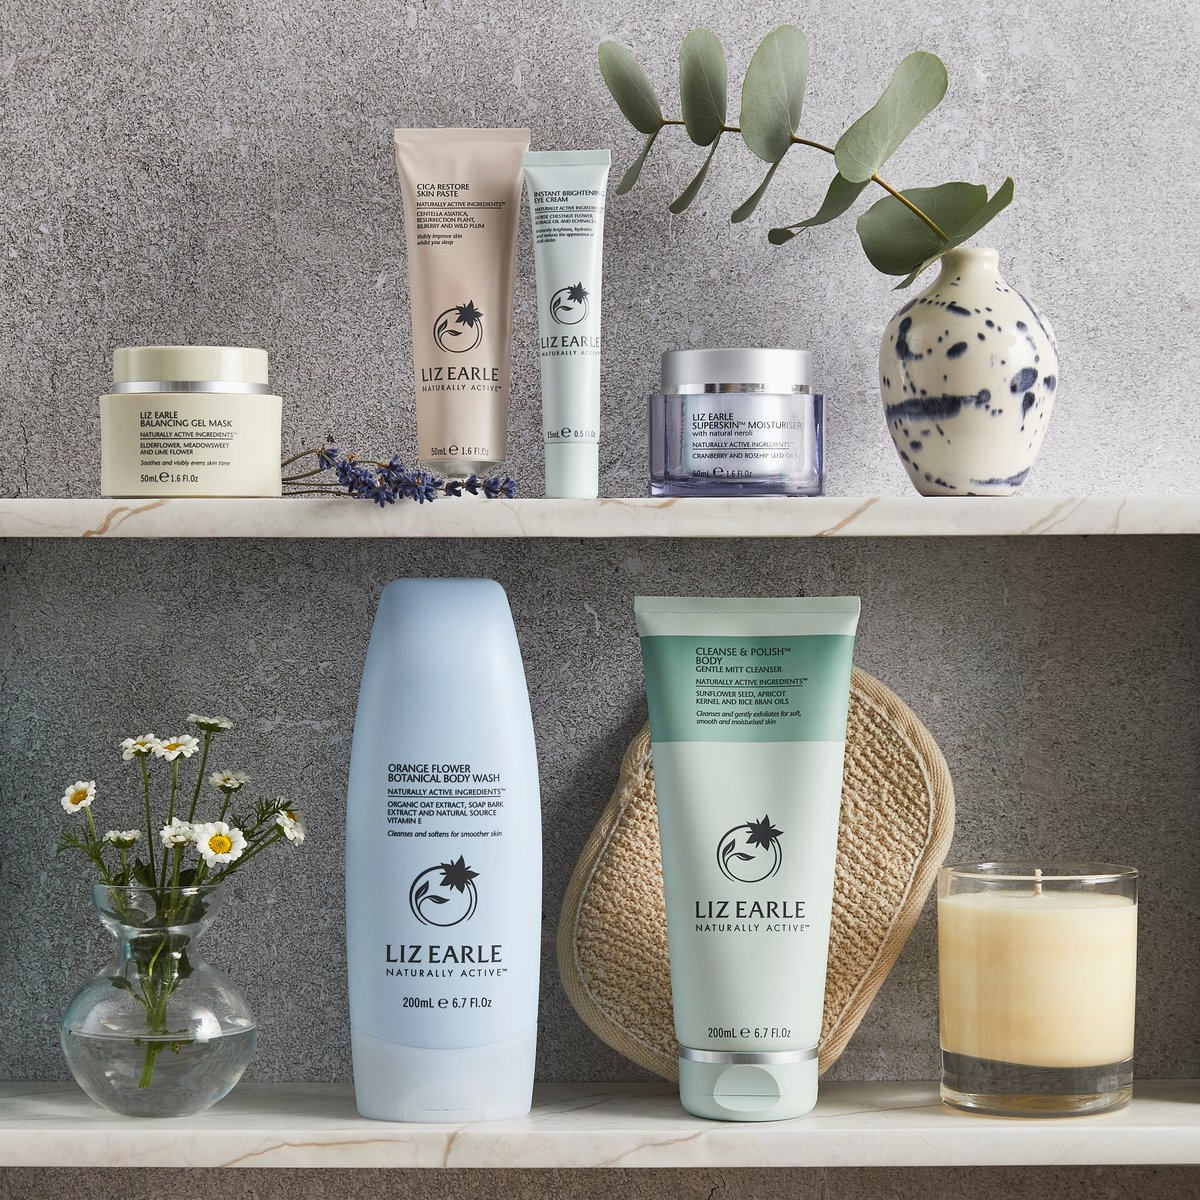 It's official – we're live on https://t.co/v5pFsaDiBE! 🎉 🎉 Discovering your botanical favourites has never been easier, so take your Liz Earle experience to the Next level ⬆ https://t.co/SUrXE1oWqO https://t.co/1noGhhCnqe